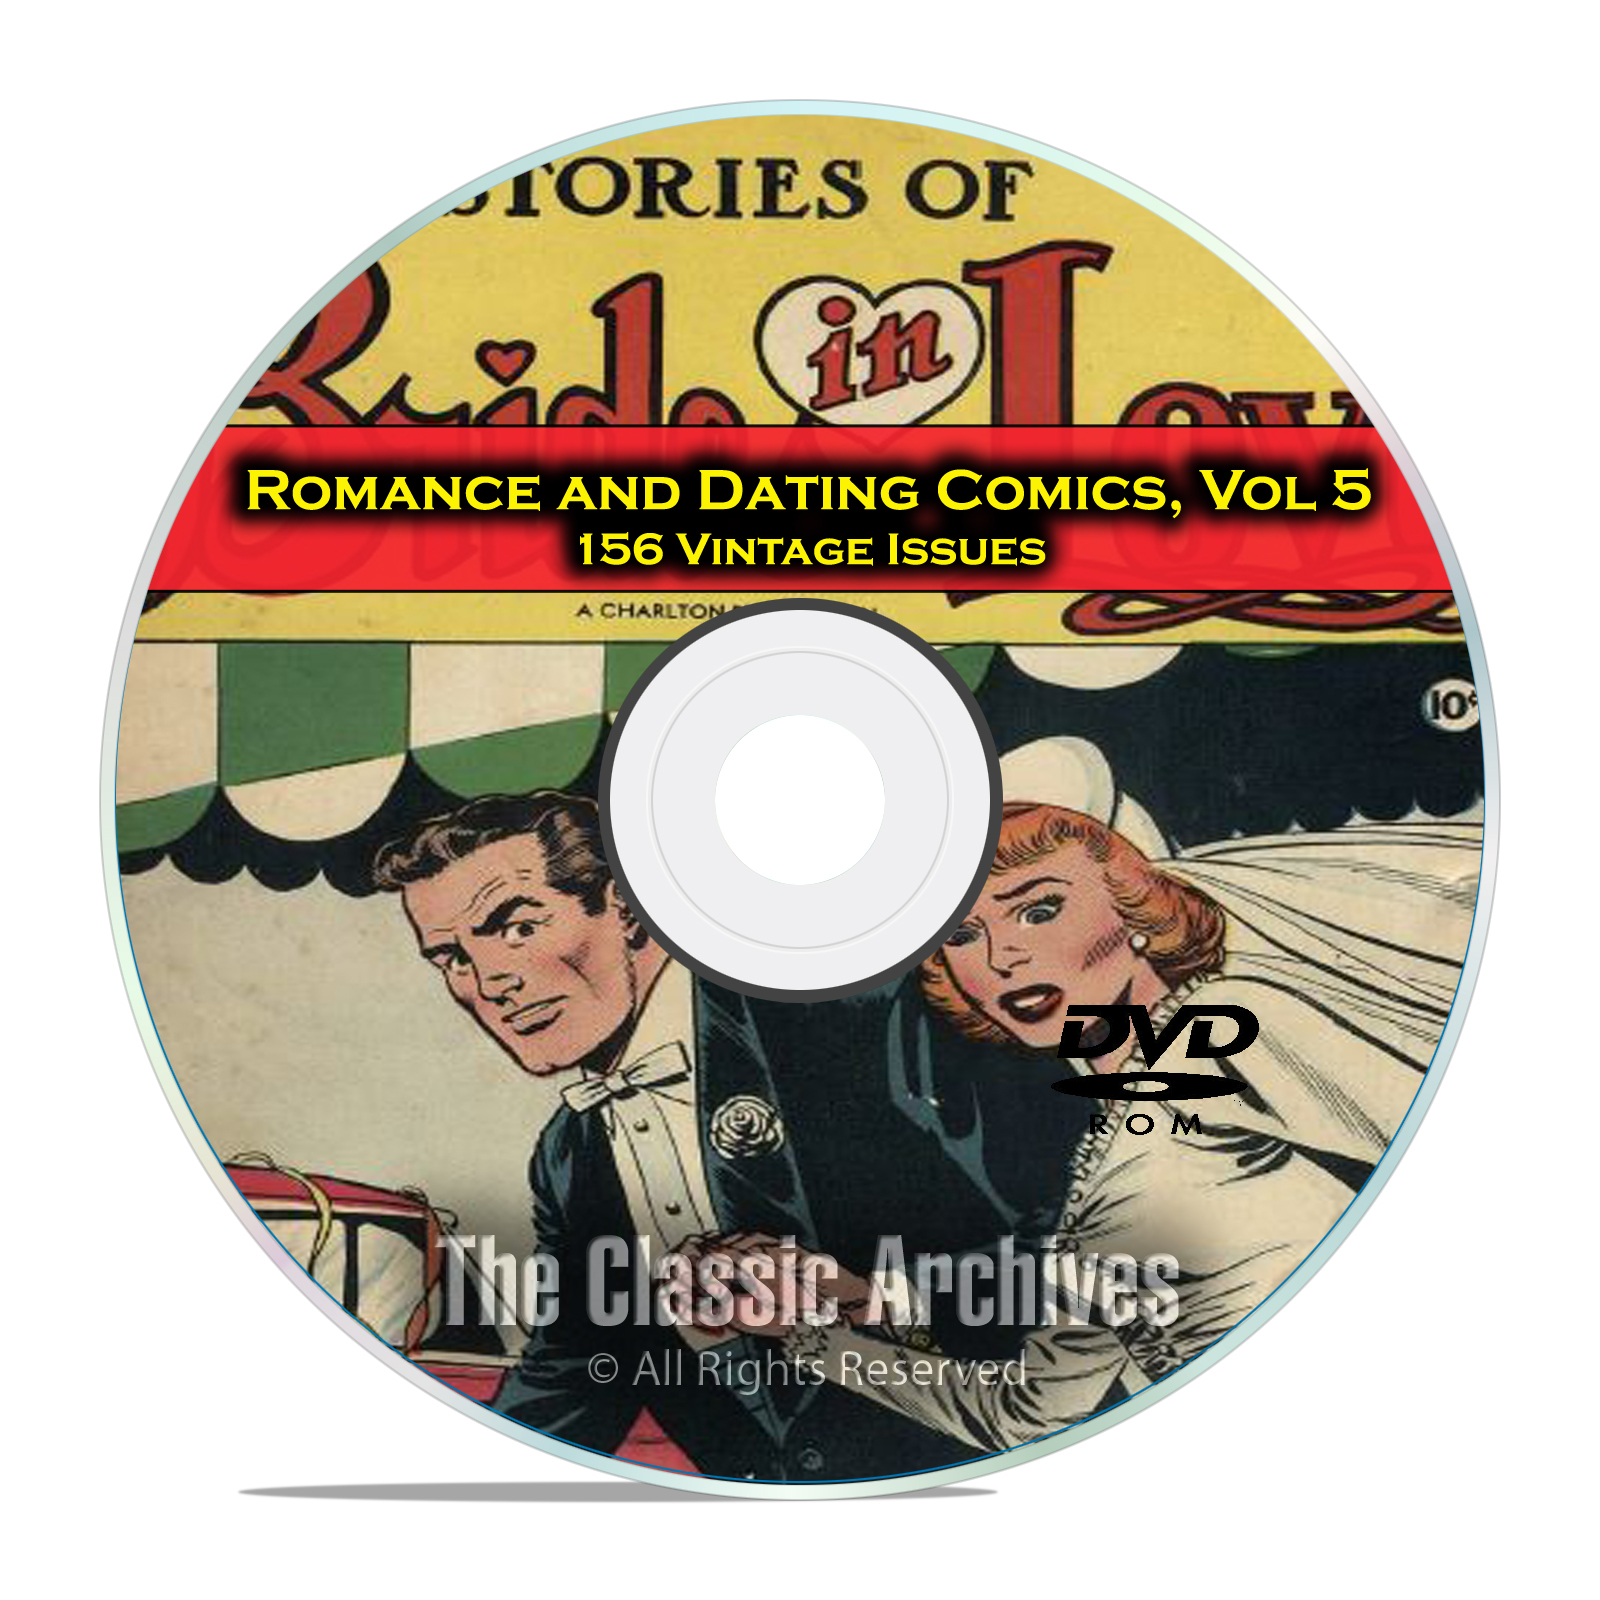 Romance, Love, Dating Comics, Vol 5, Brides in Love, Golden Age DVD